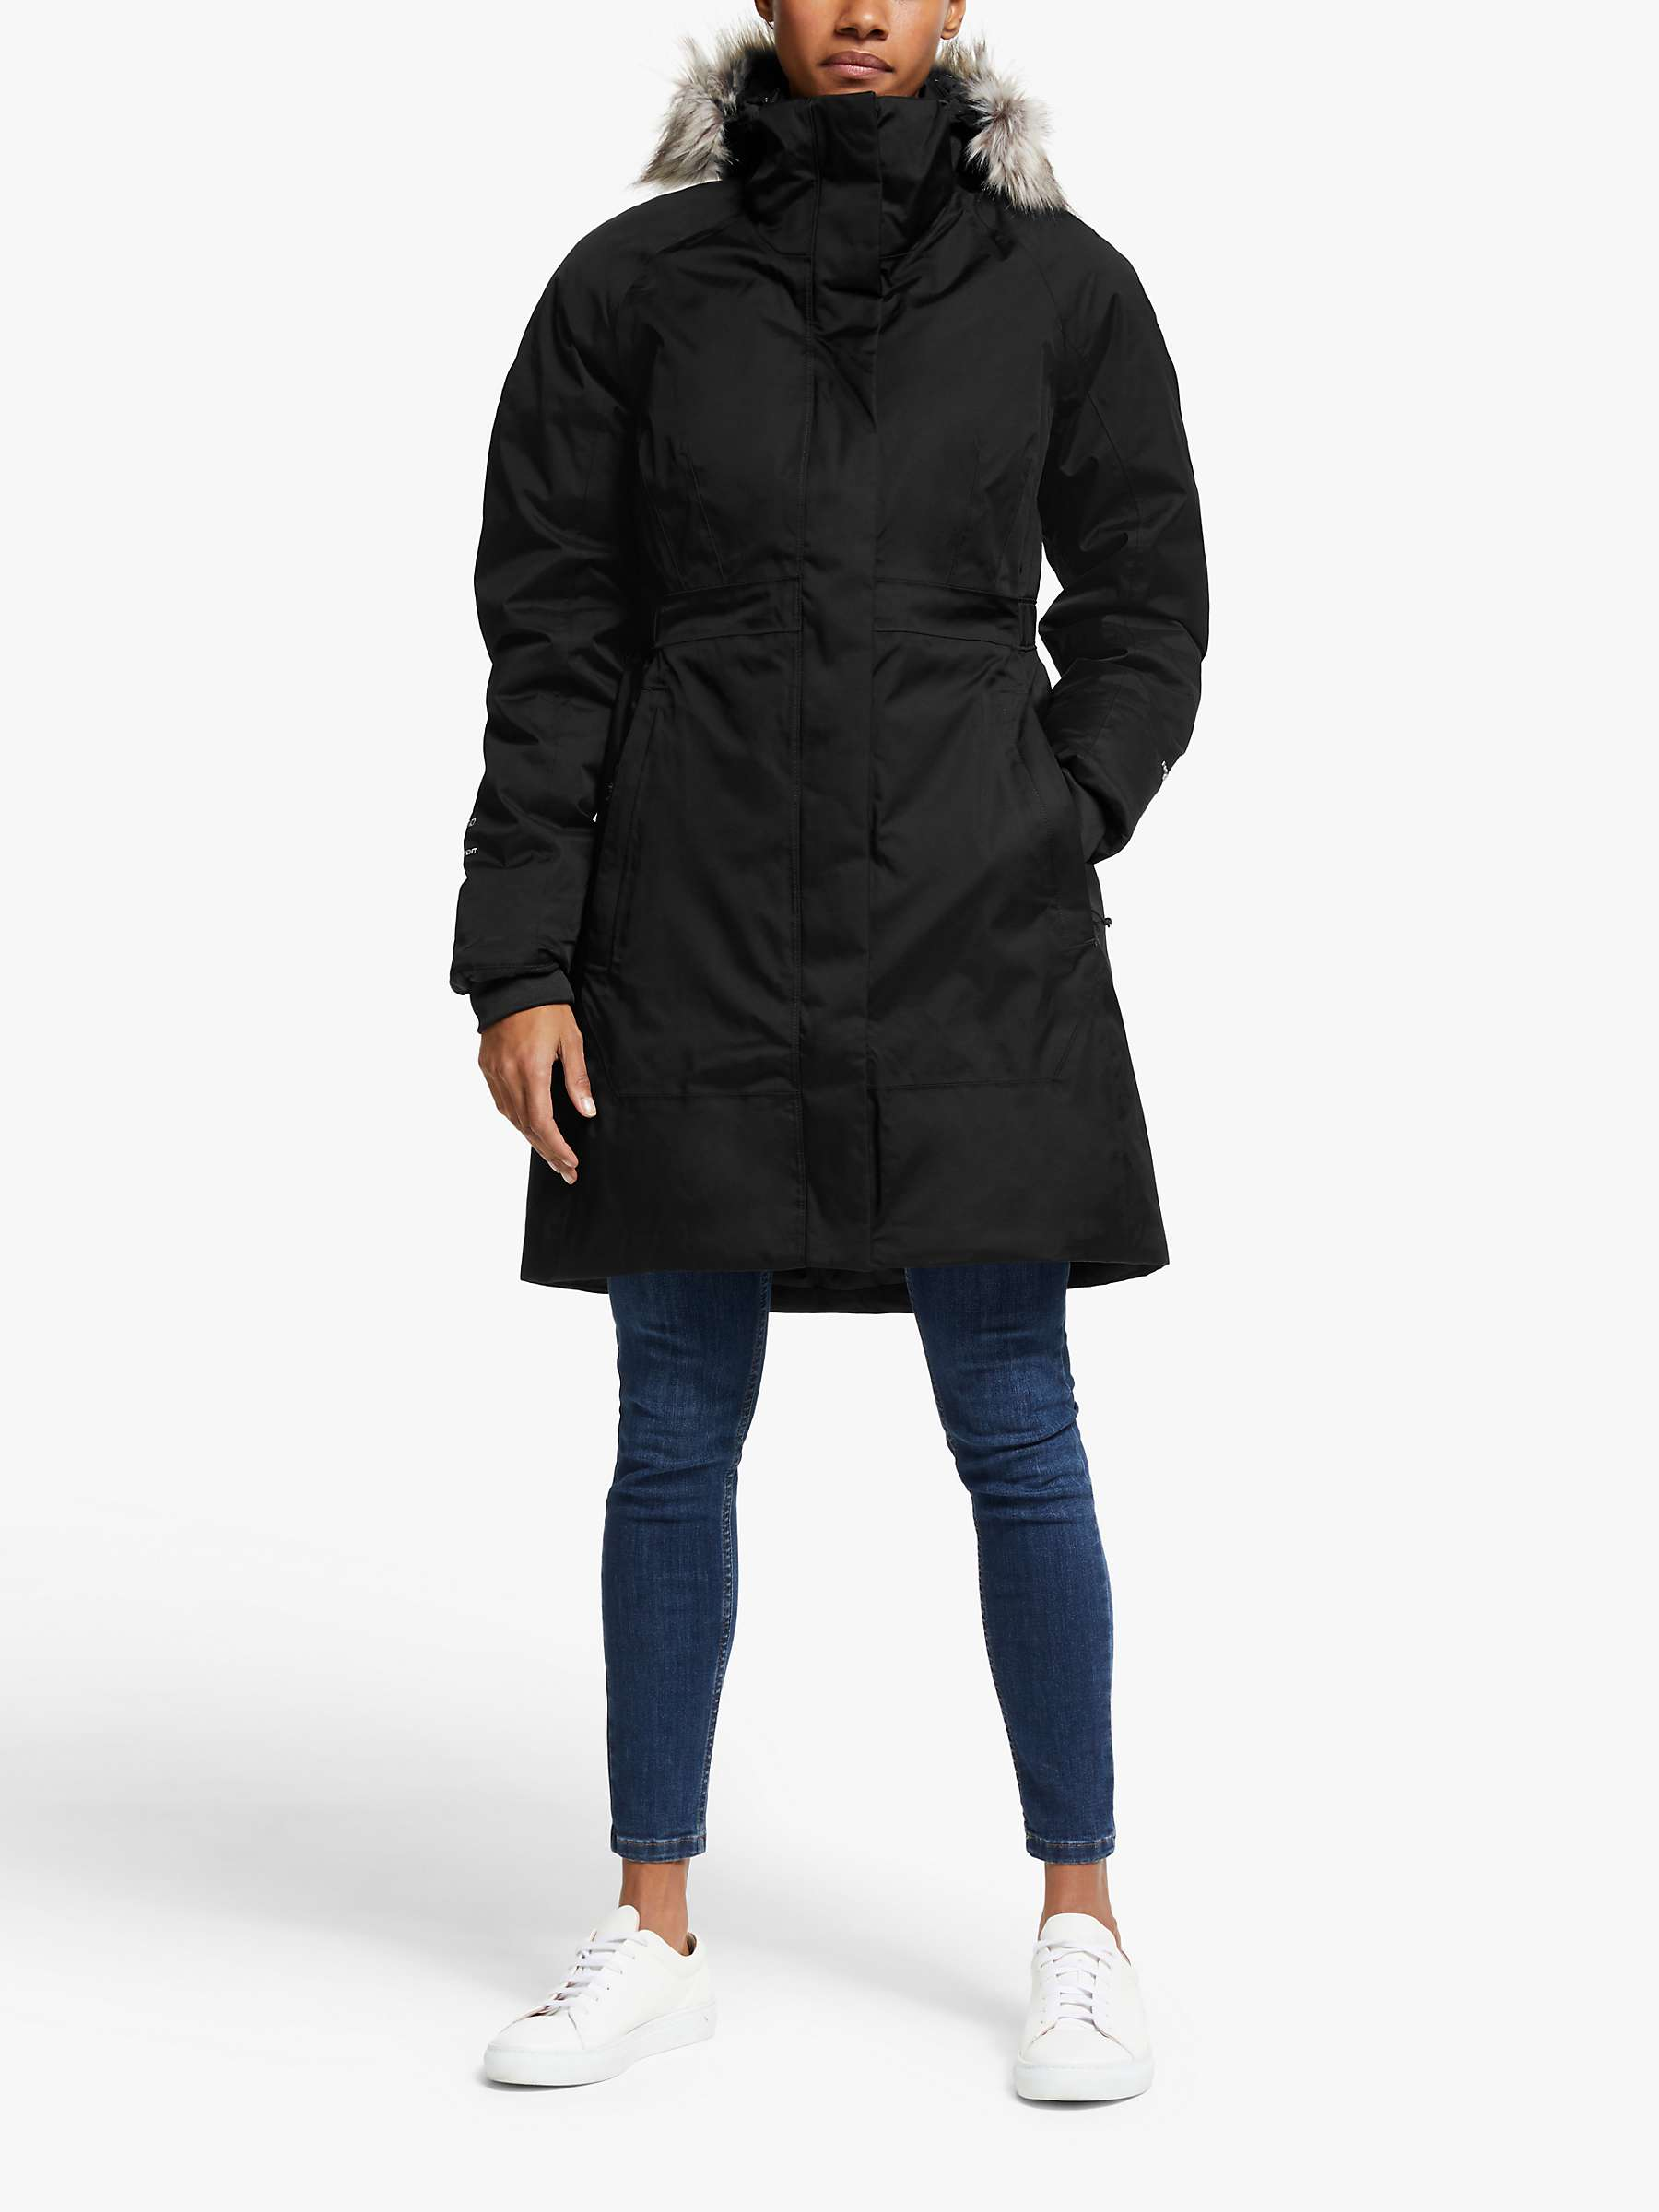 The North Face Arctic Women's Parka, Black by John Lewis